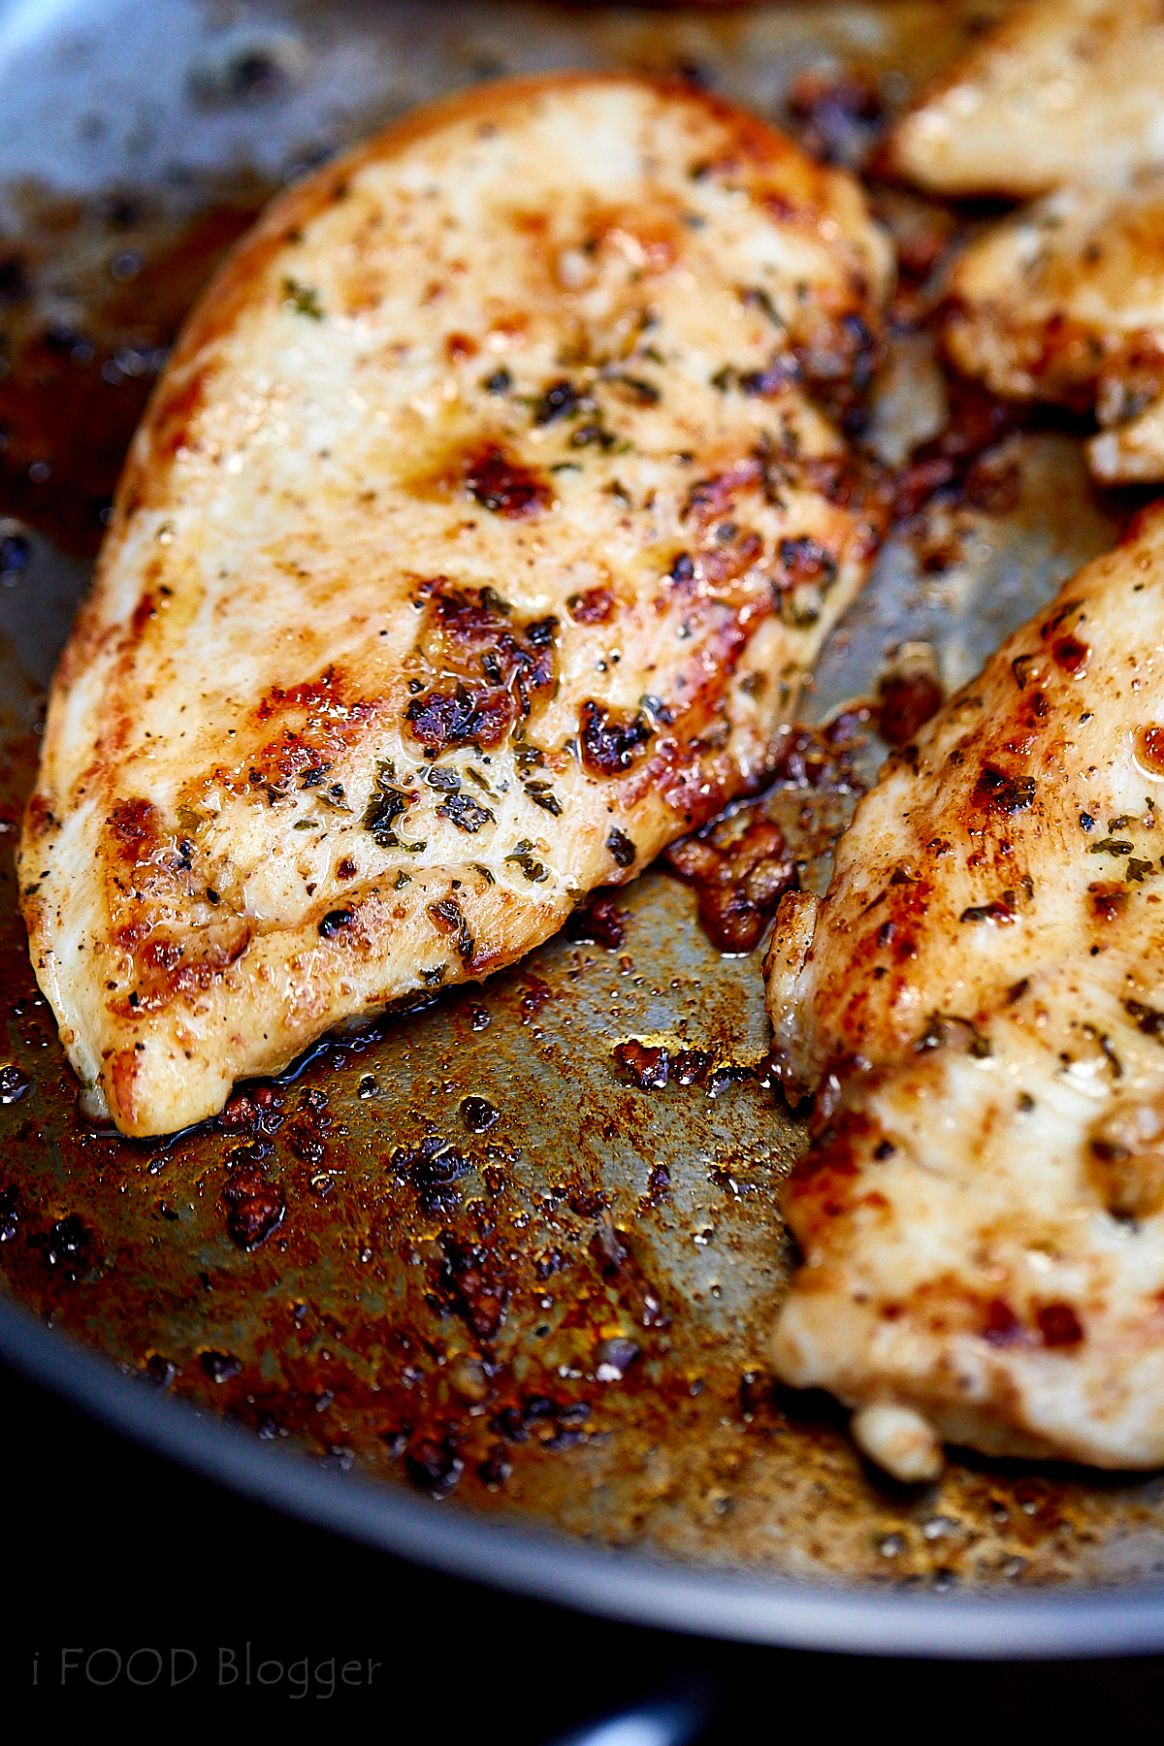 12-Minute Pan-Fried Chicken Breast - Recipes Chicken Breast Pan Fried